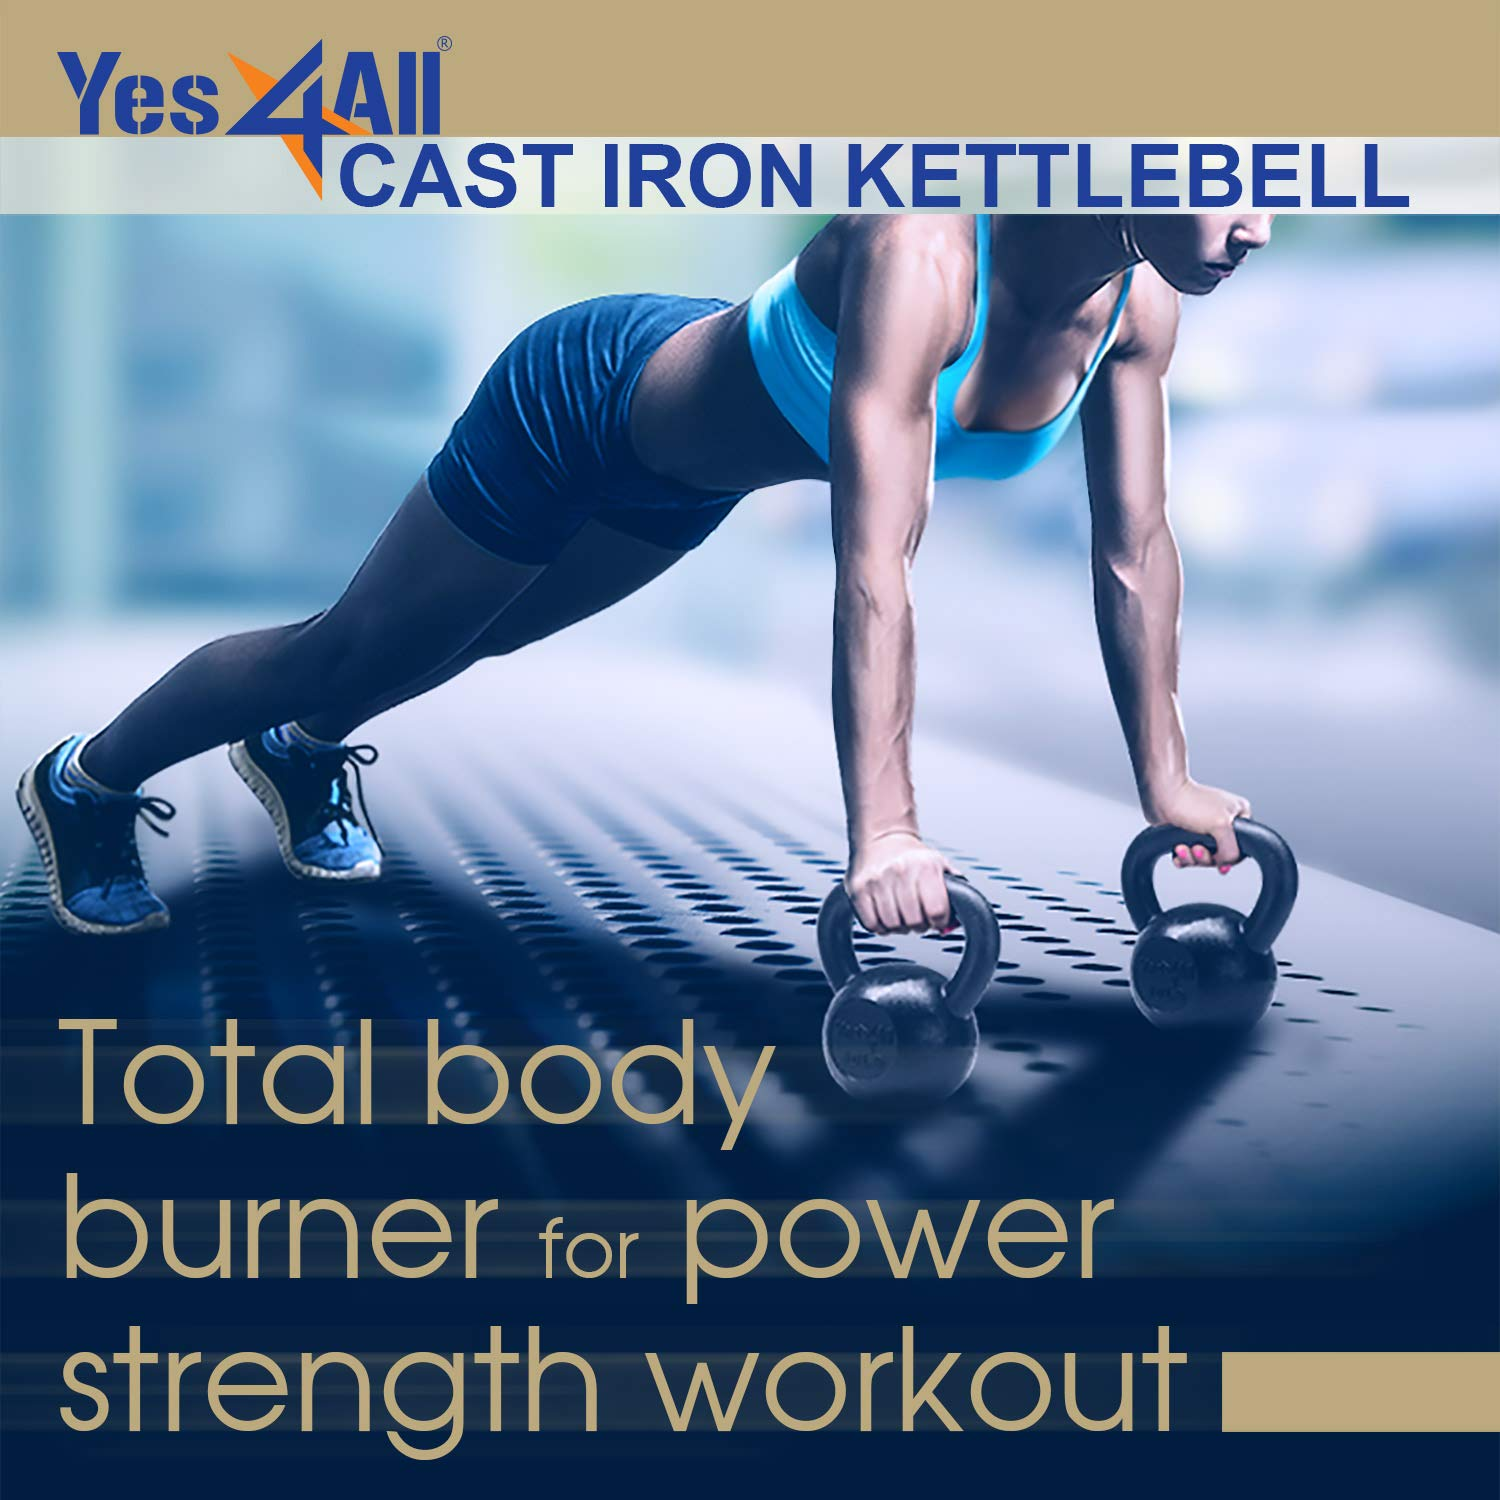 Yes4All Solid Cast Iron Kettlebell Weights Set - Great for Full Body Workout and Strength Training - Kettlebell 35 lbs (Black) by Yes4All (Image #6)